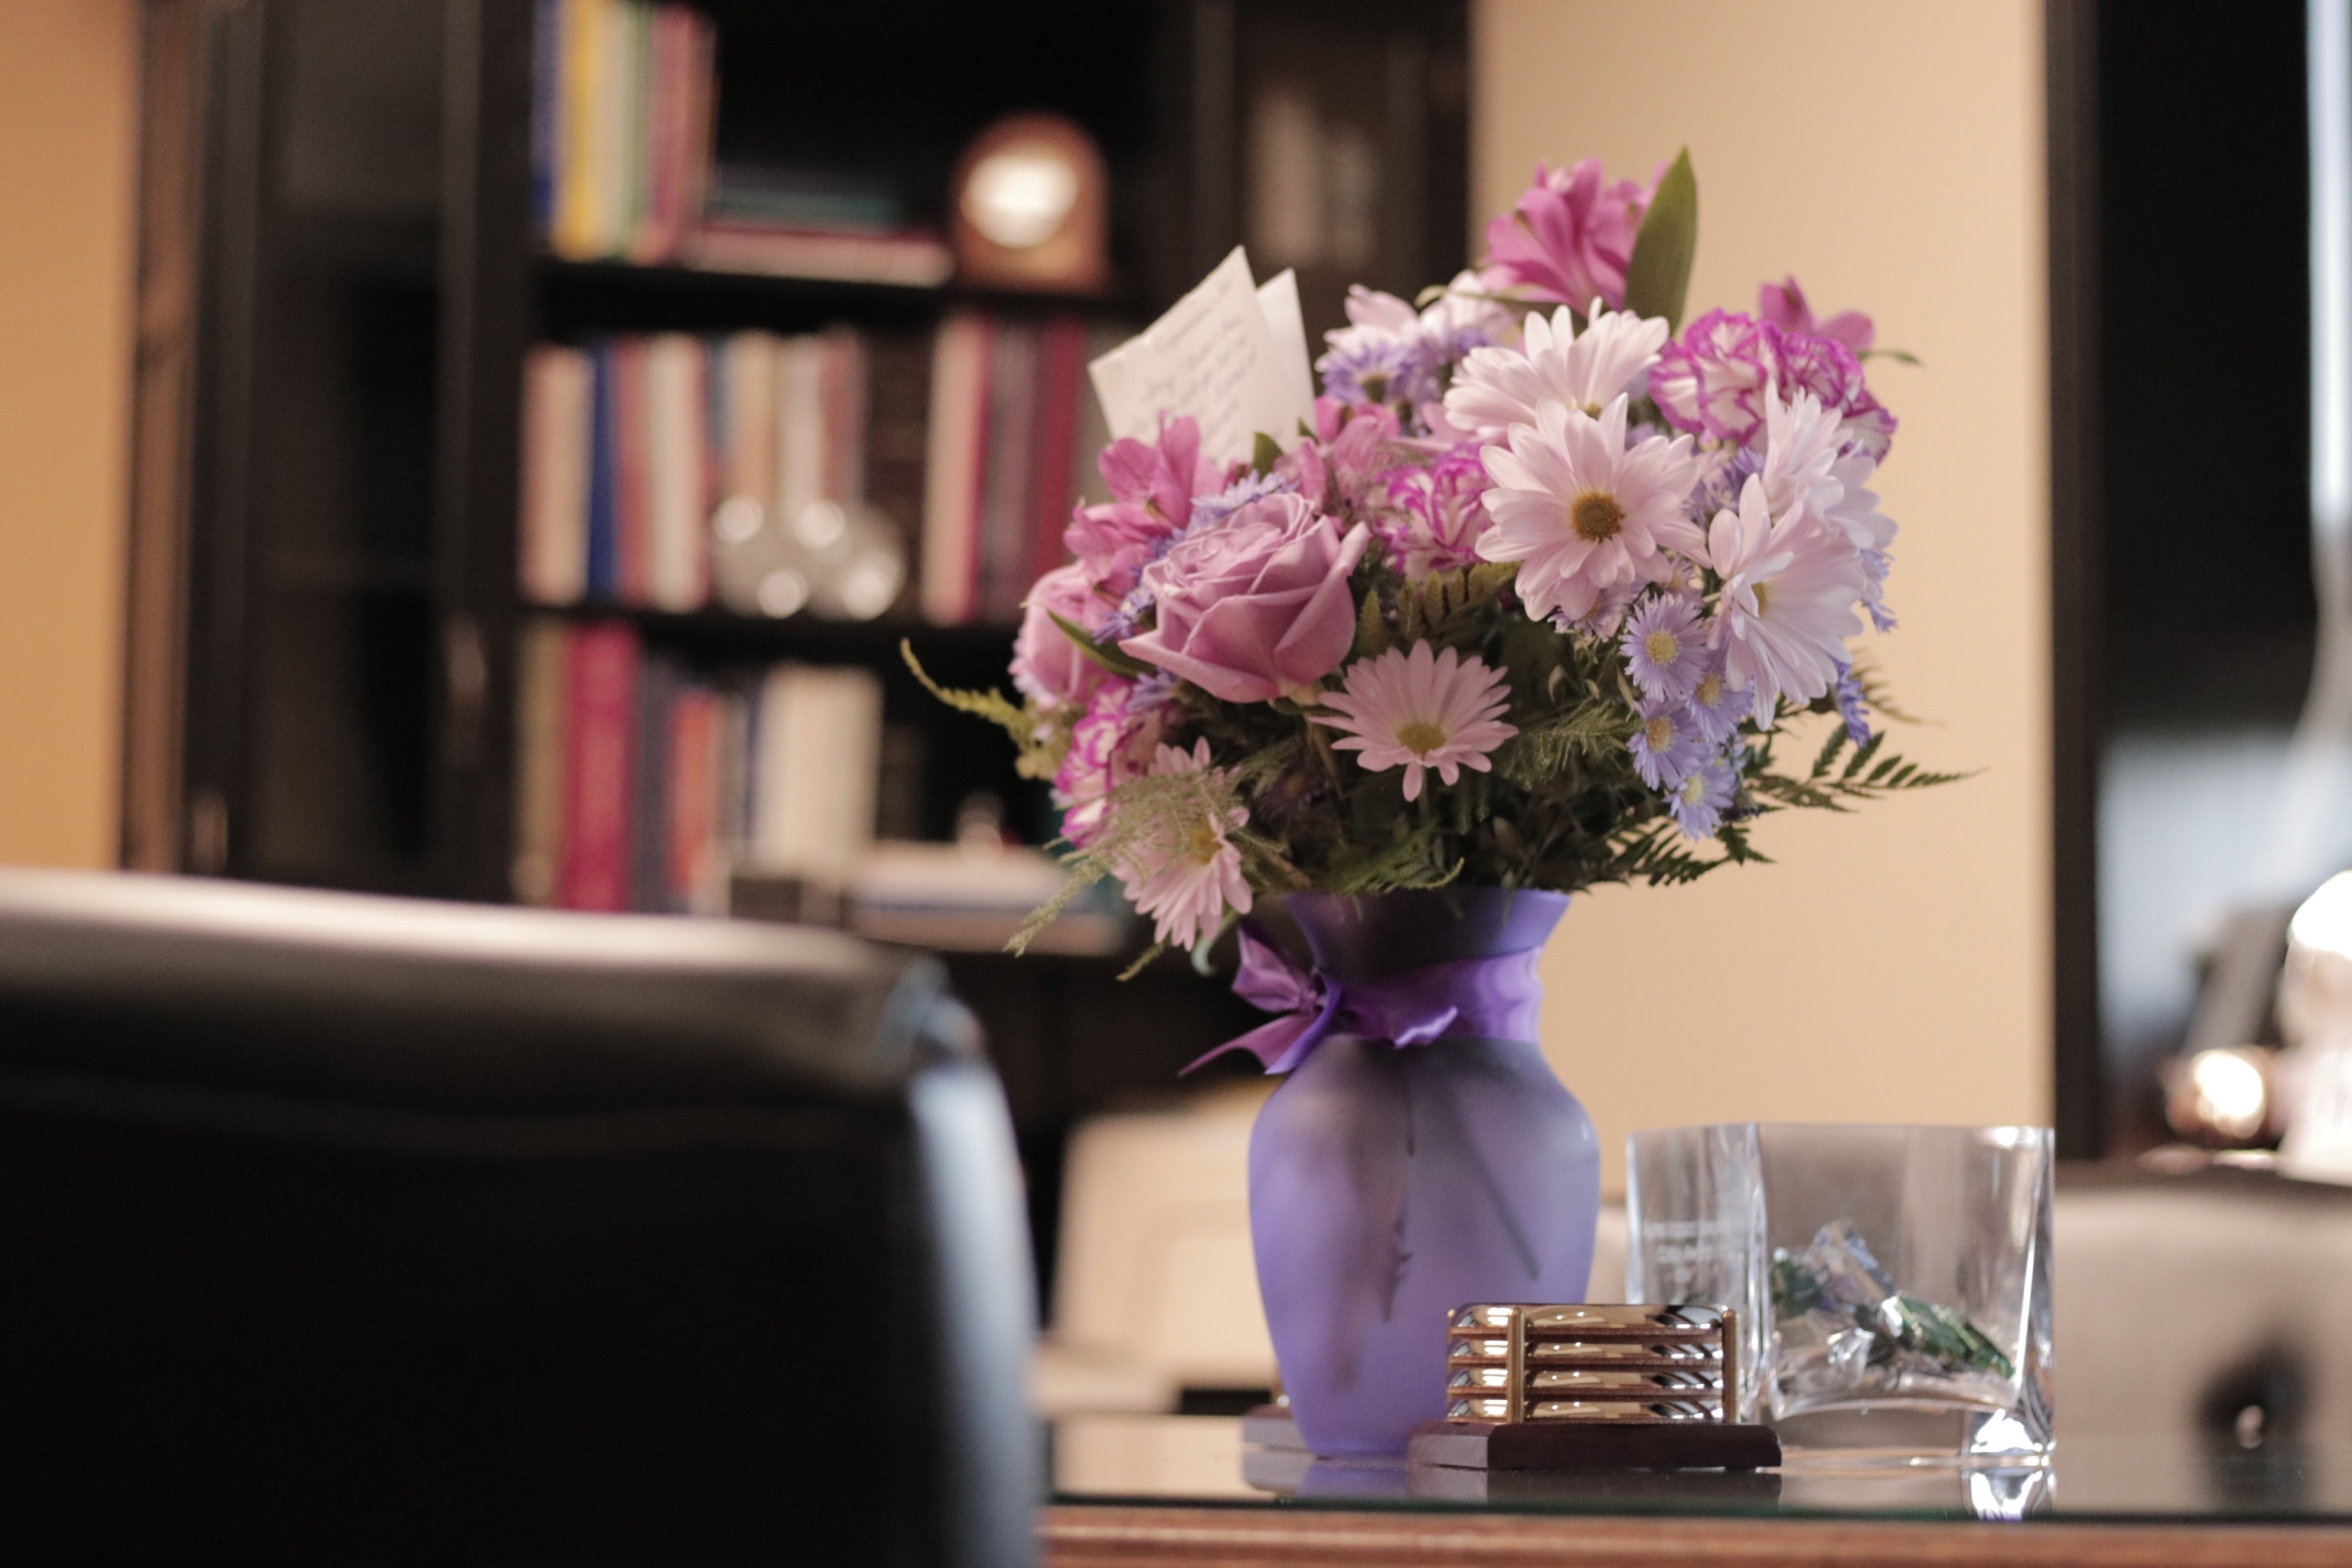 White and Pink Flowers in Vase